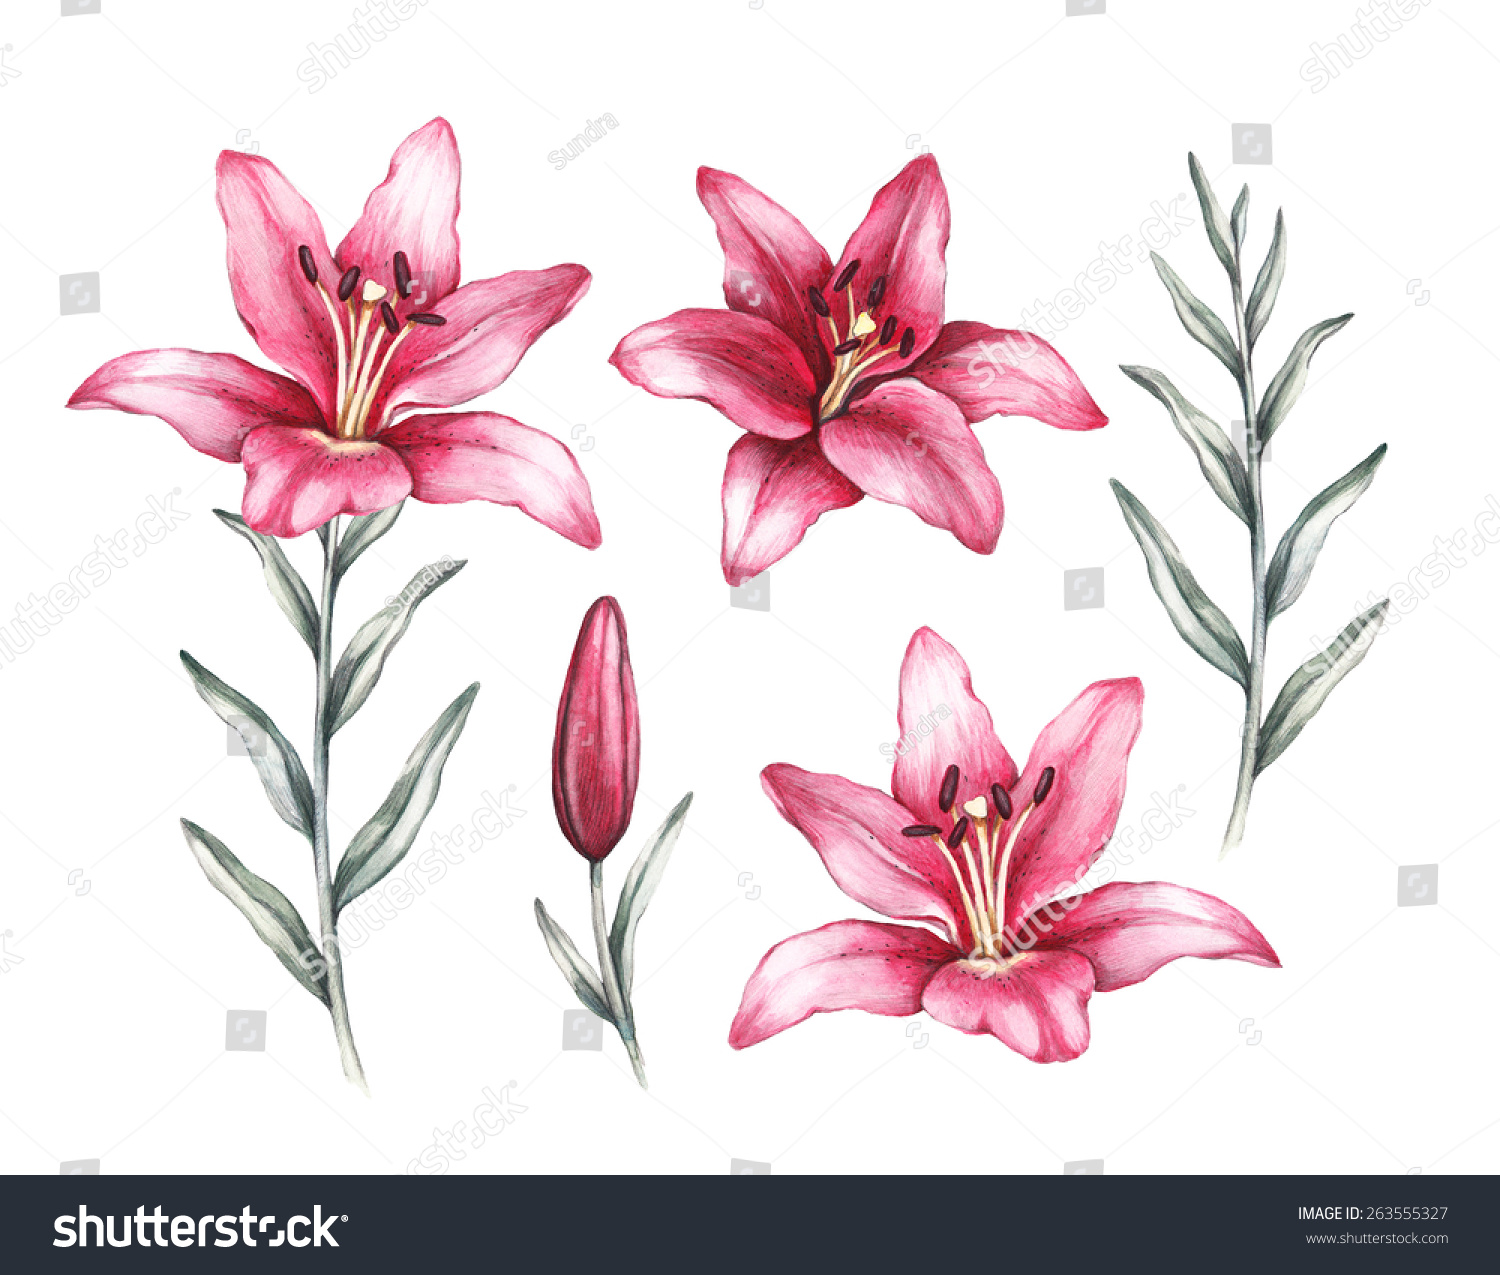 Drawings lily flowers stock illustration 263555327 shutterstock drawings of lily flowers izmirmasajfo